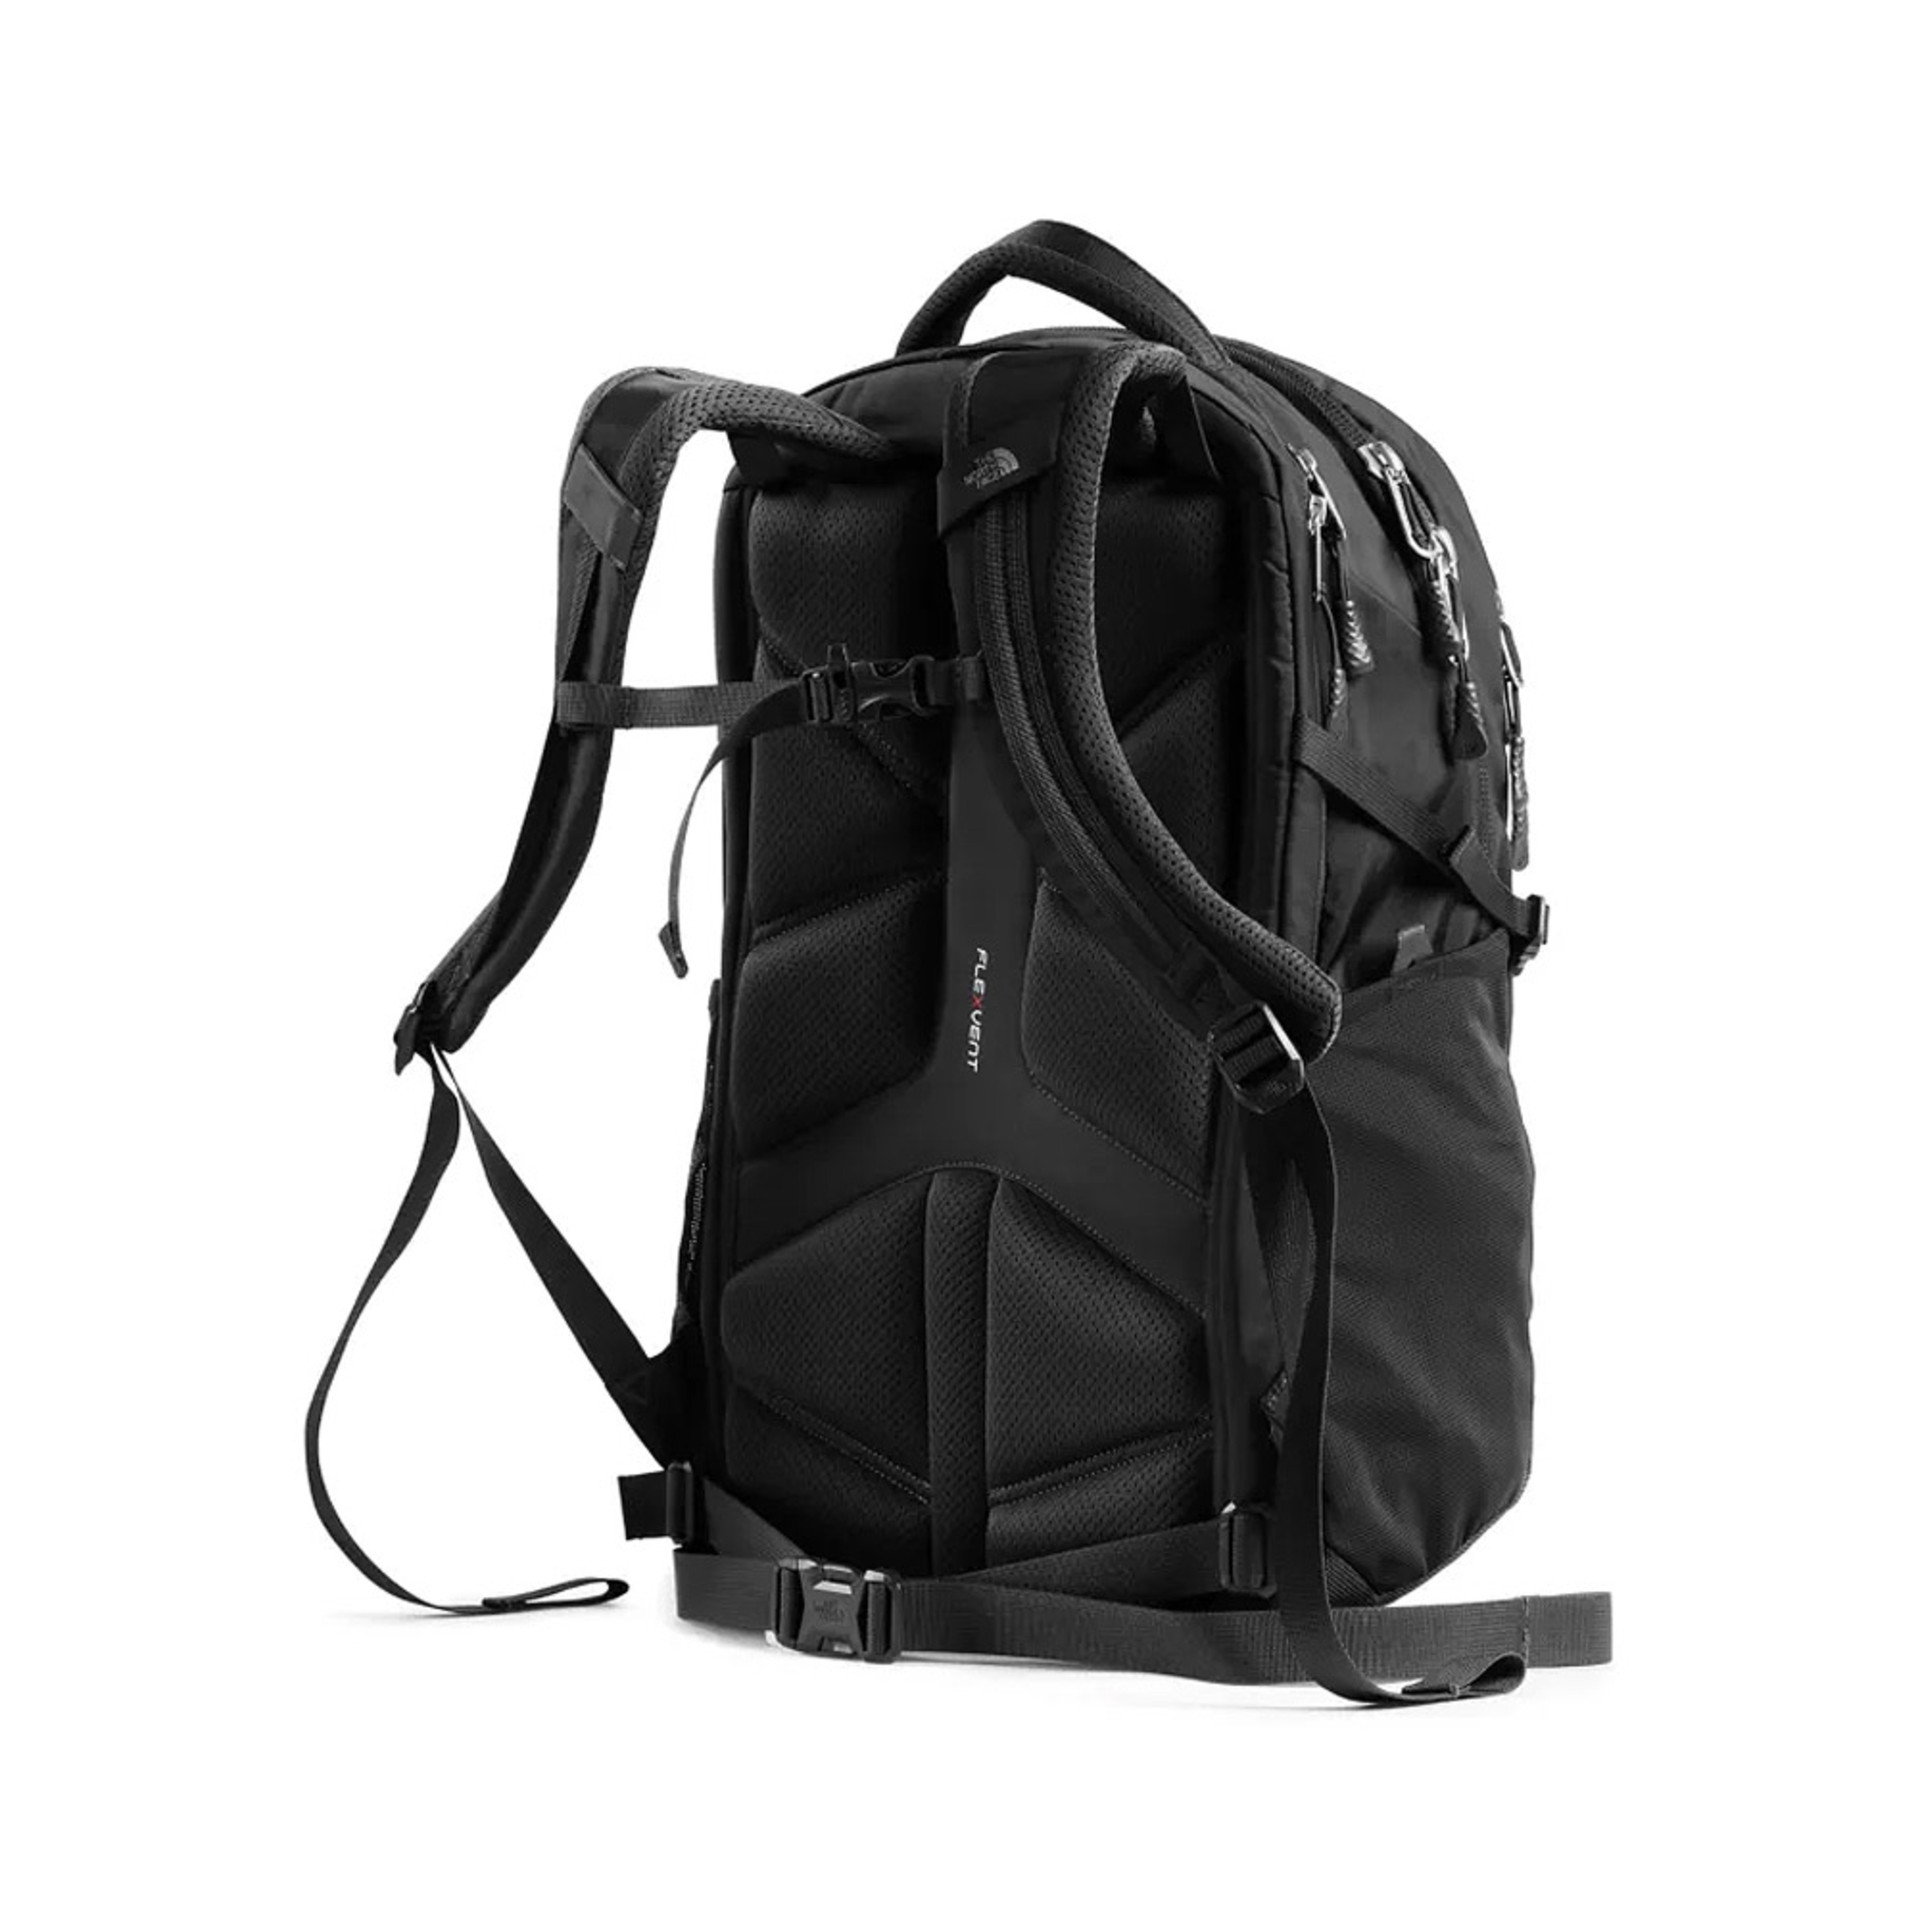 The North Face Women's Recon Backpack Black Back